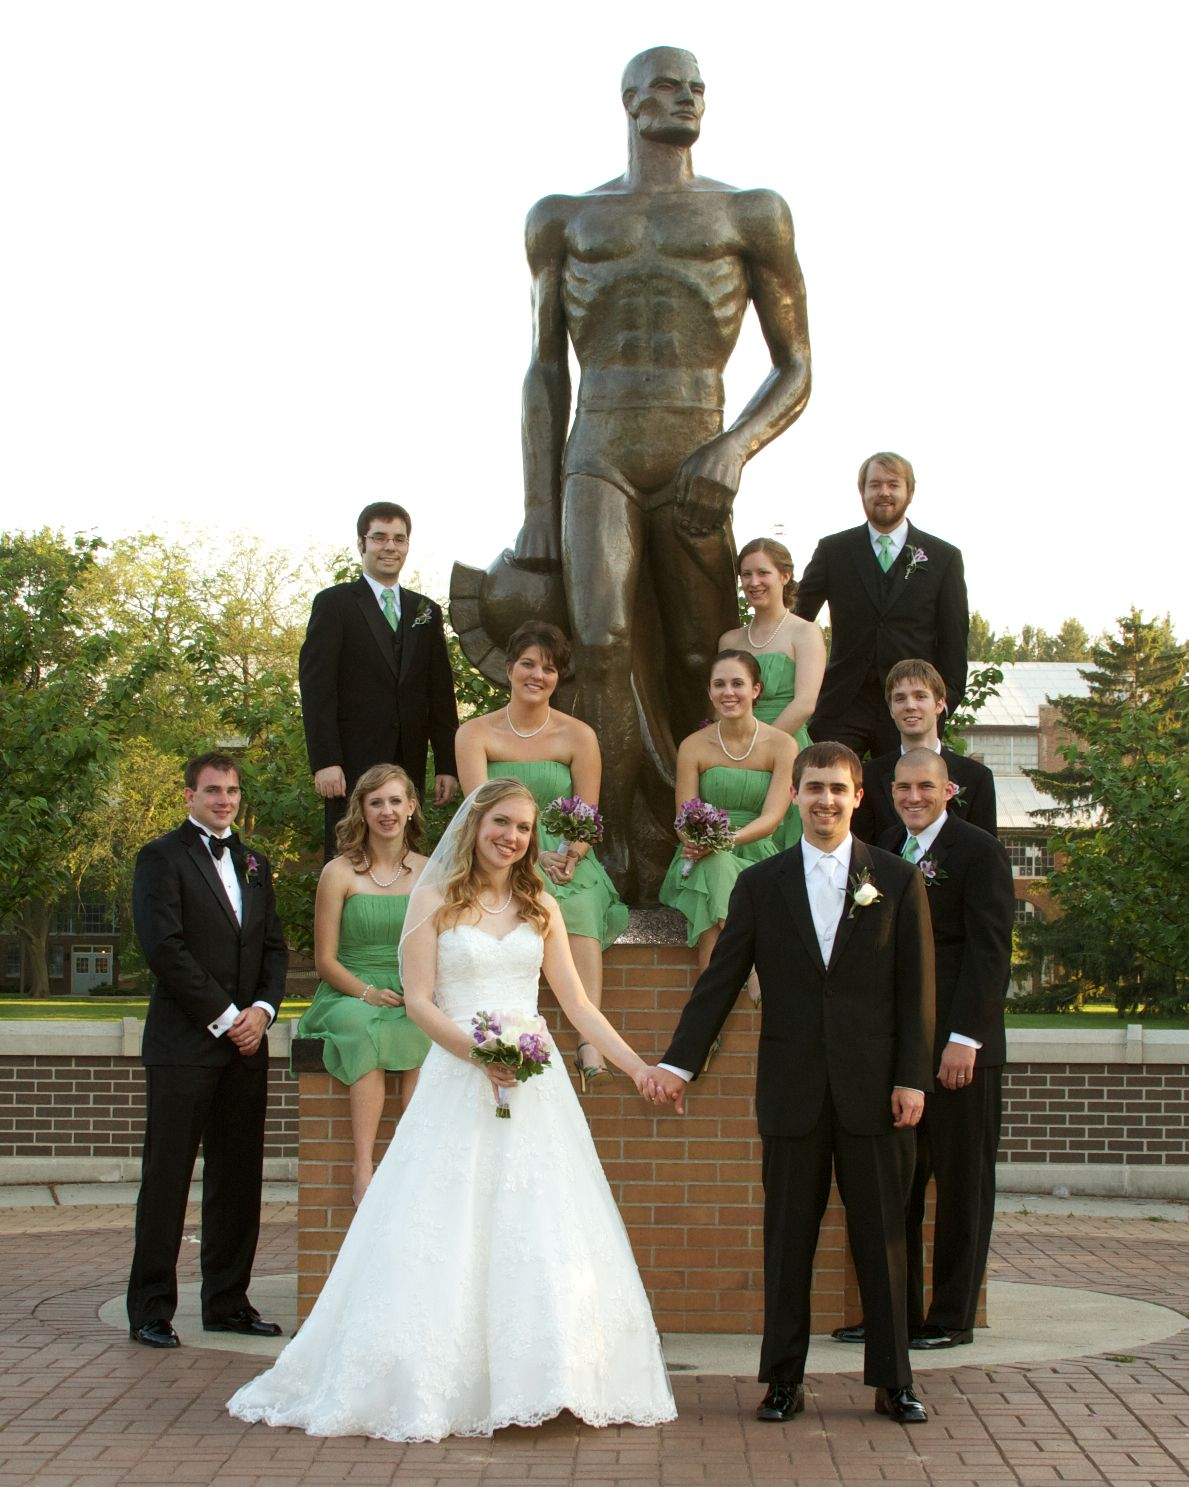 Michigan State University Wedding Photo At Sparty East Lansing Mi